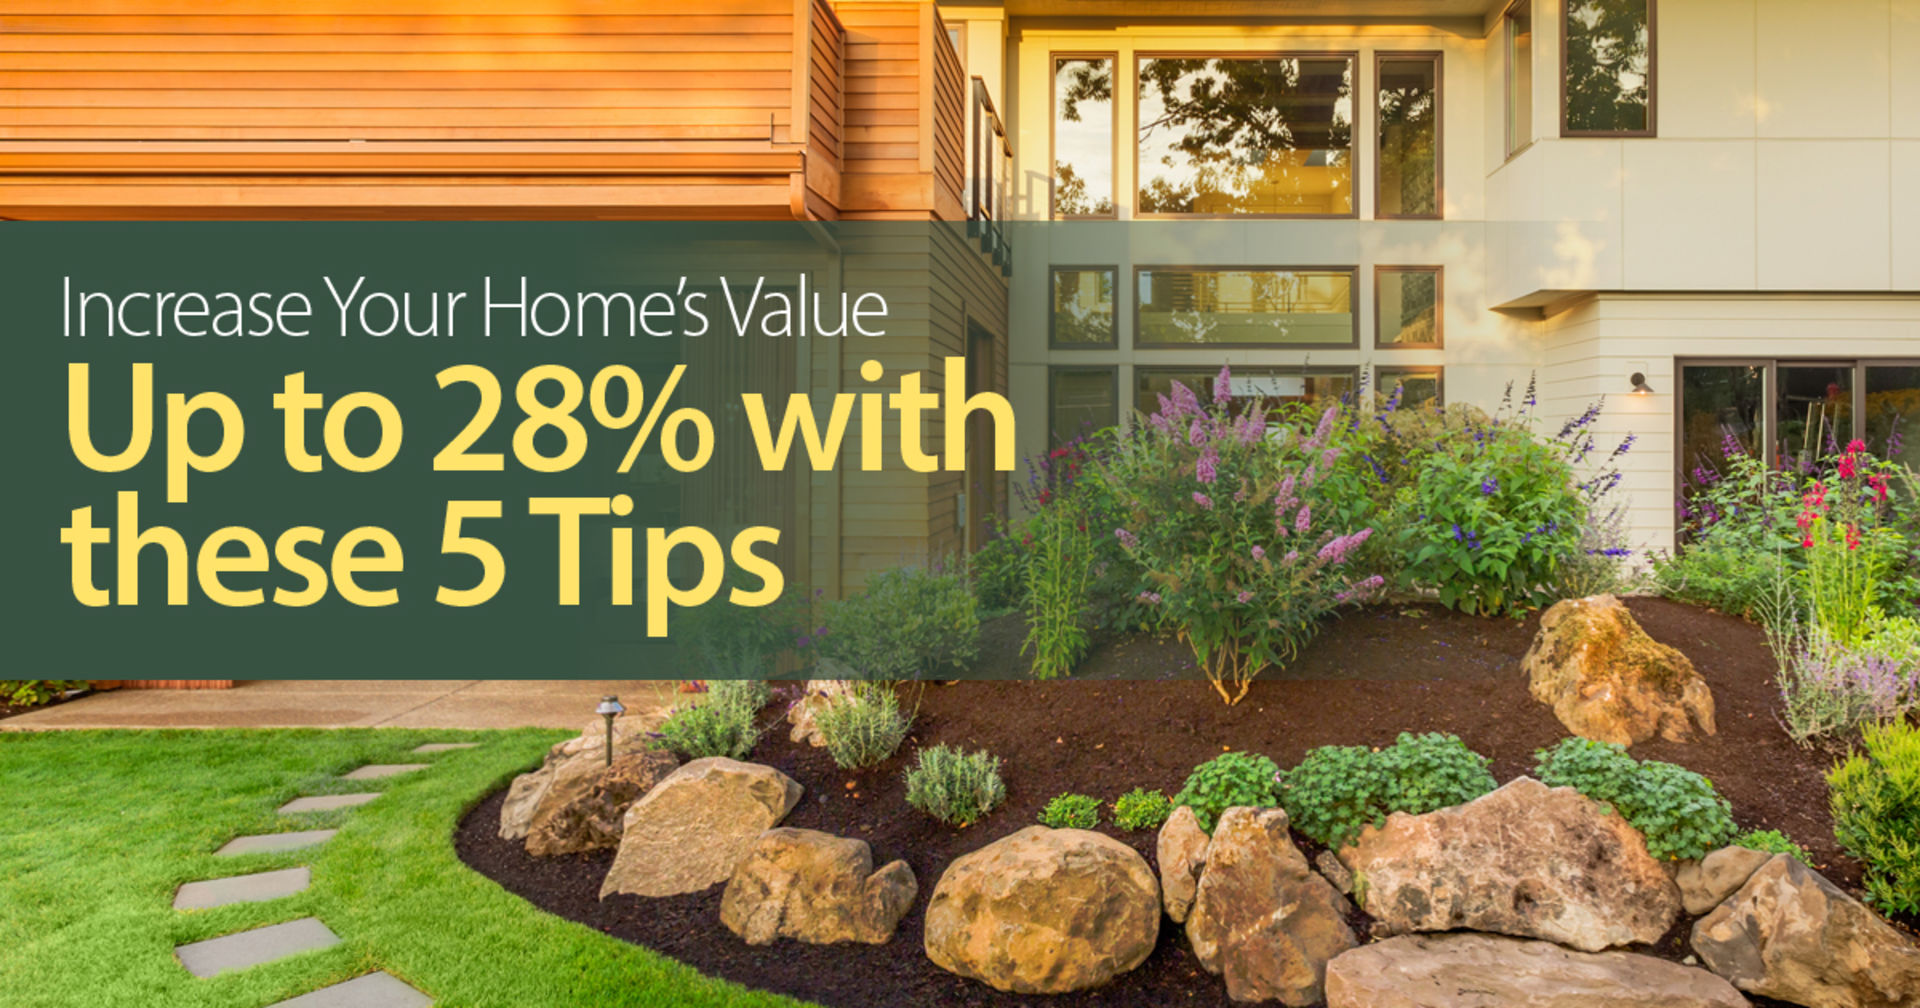 ​Increase Your Home's Value Up to 28% with These 5 Tips